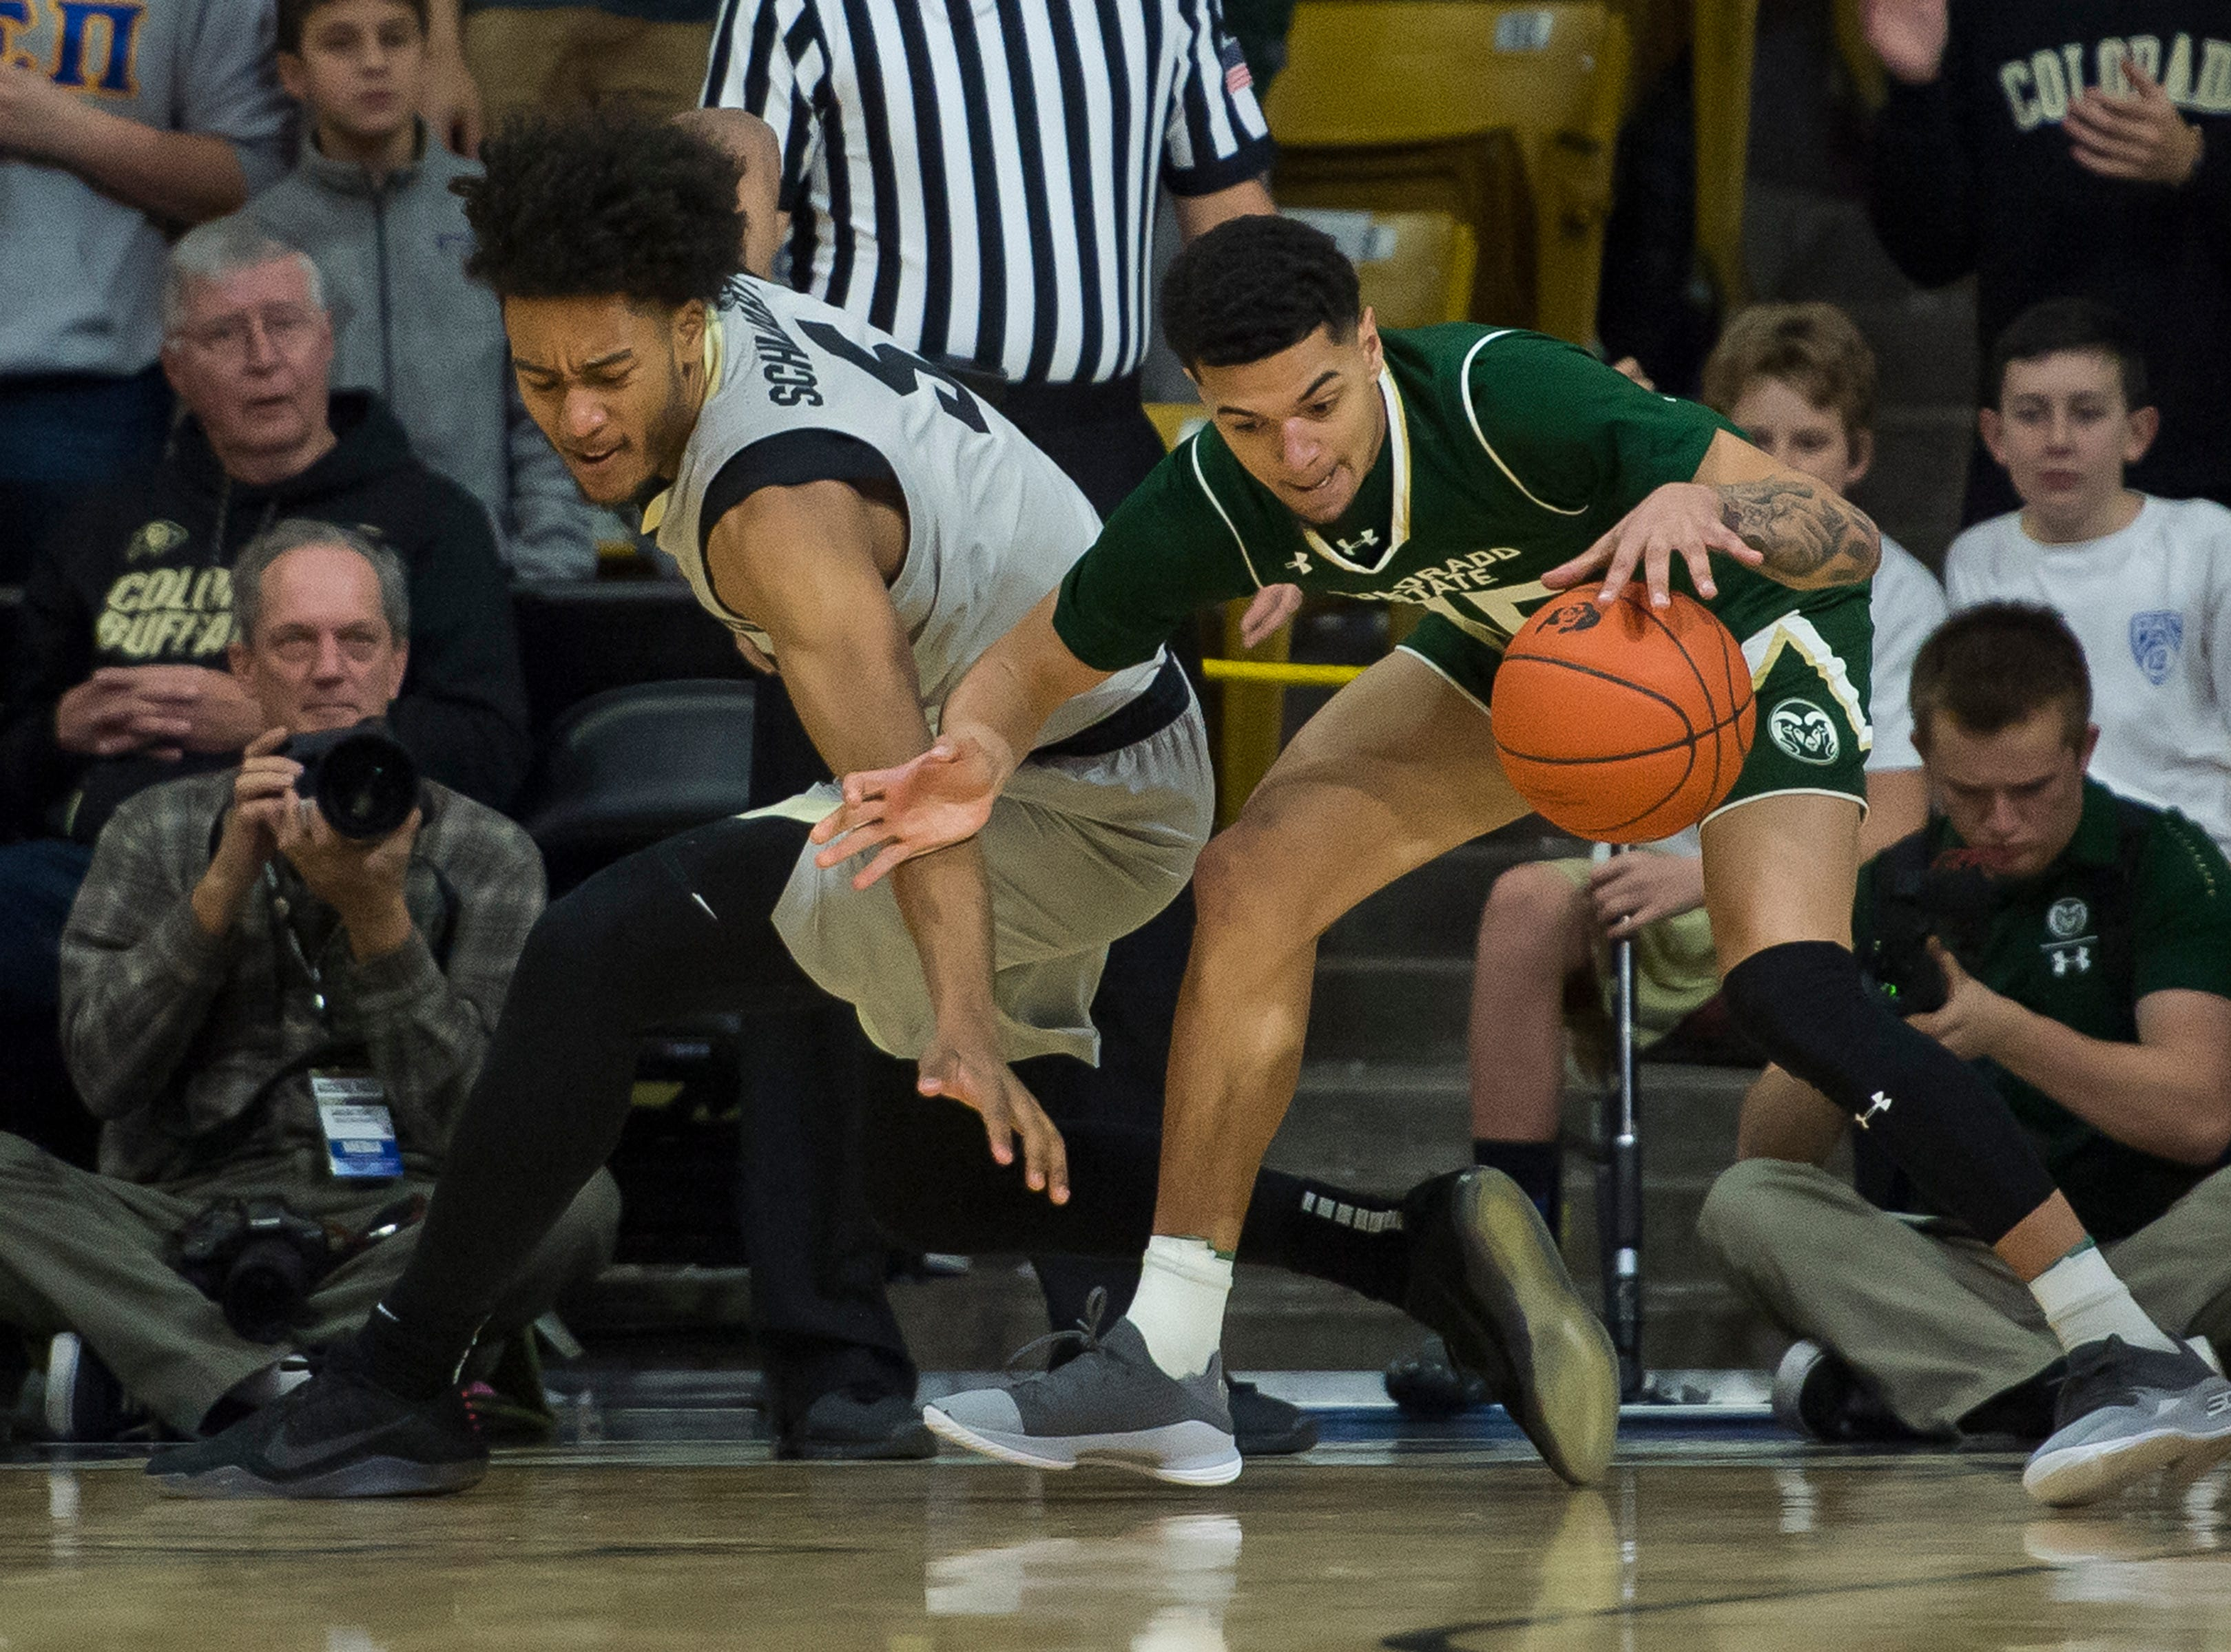 Colorado State University junior guard Anthony Masinton-Bonner (15) steals the ball from University of Colorado sophomore guard D'Shawn Schwartz (5) on Saturday, Dec. 1, 2018, at the CU Event Center in Boulder, Colo.